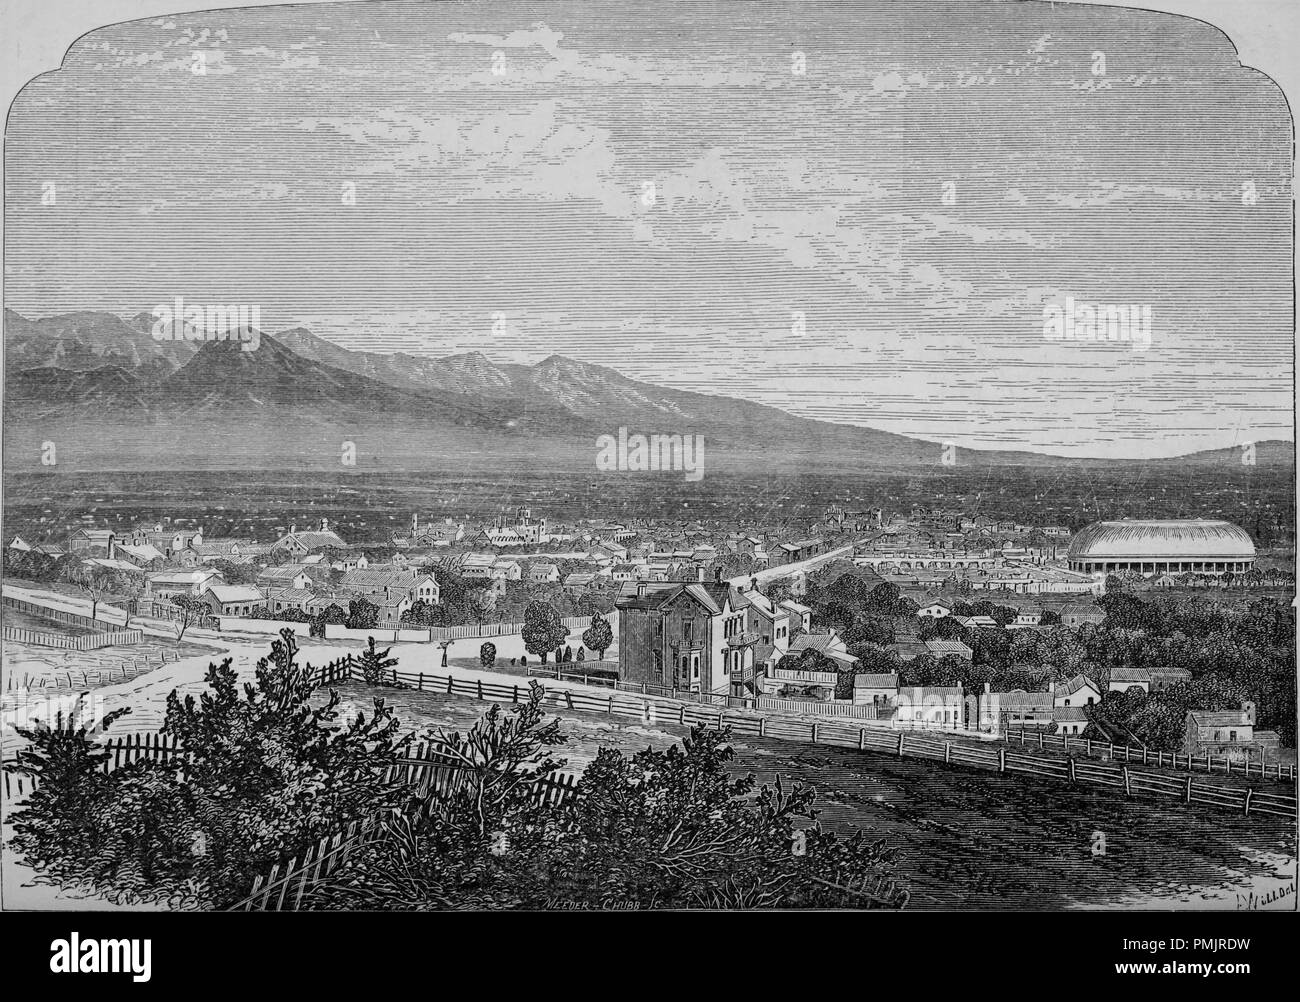 Engraving of the Salt Lake City and the Wahsatch Mountains, Utah, from the book 'The Pacific tourist', 1877. Courtesy Internet Archive. () - Stock Image